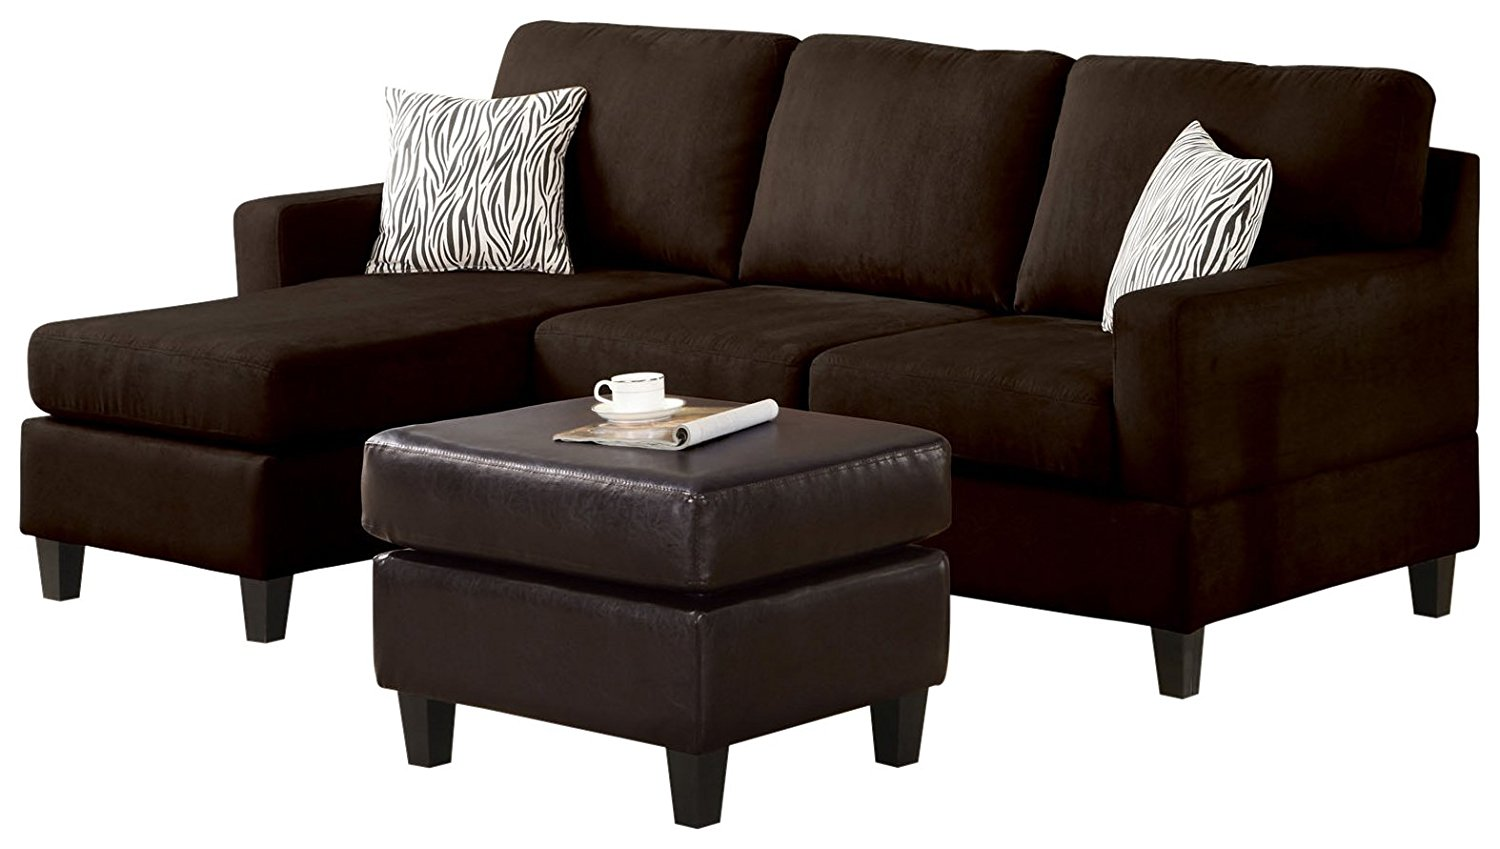 Acme Furniture Vogue Chocolate Reversible Chaise Sectional Sofa